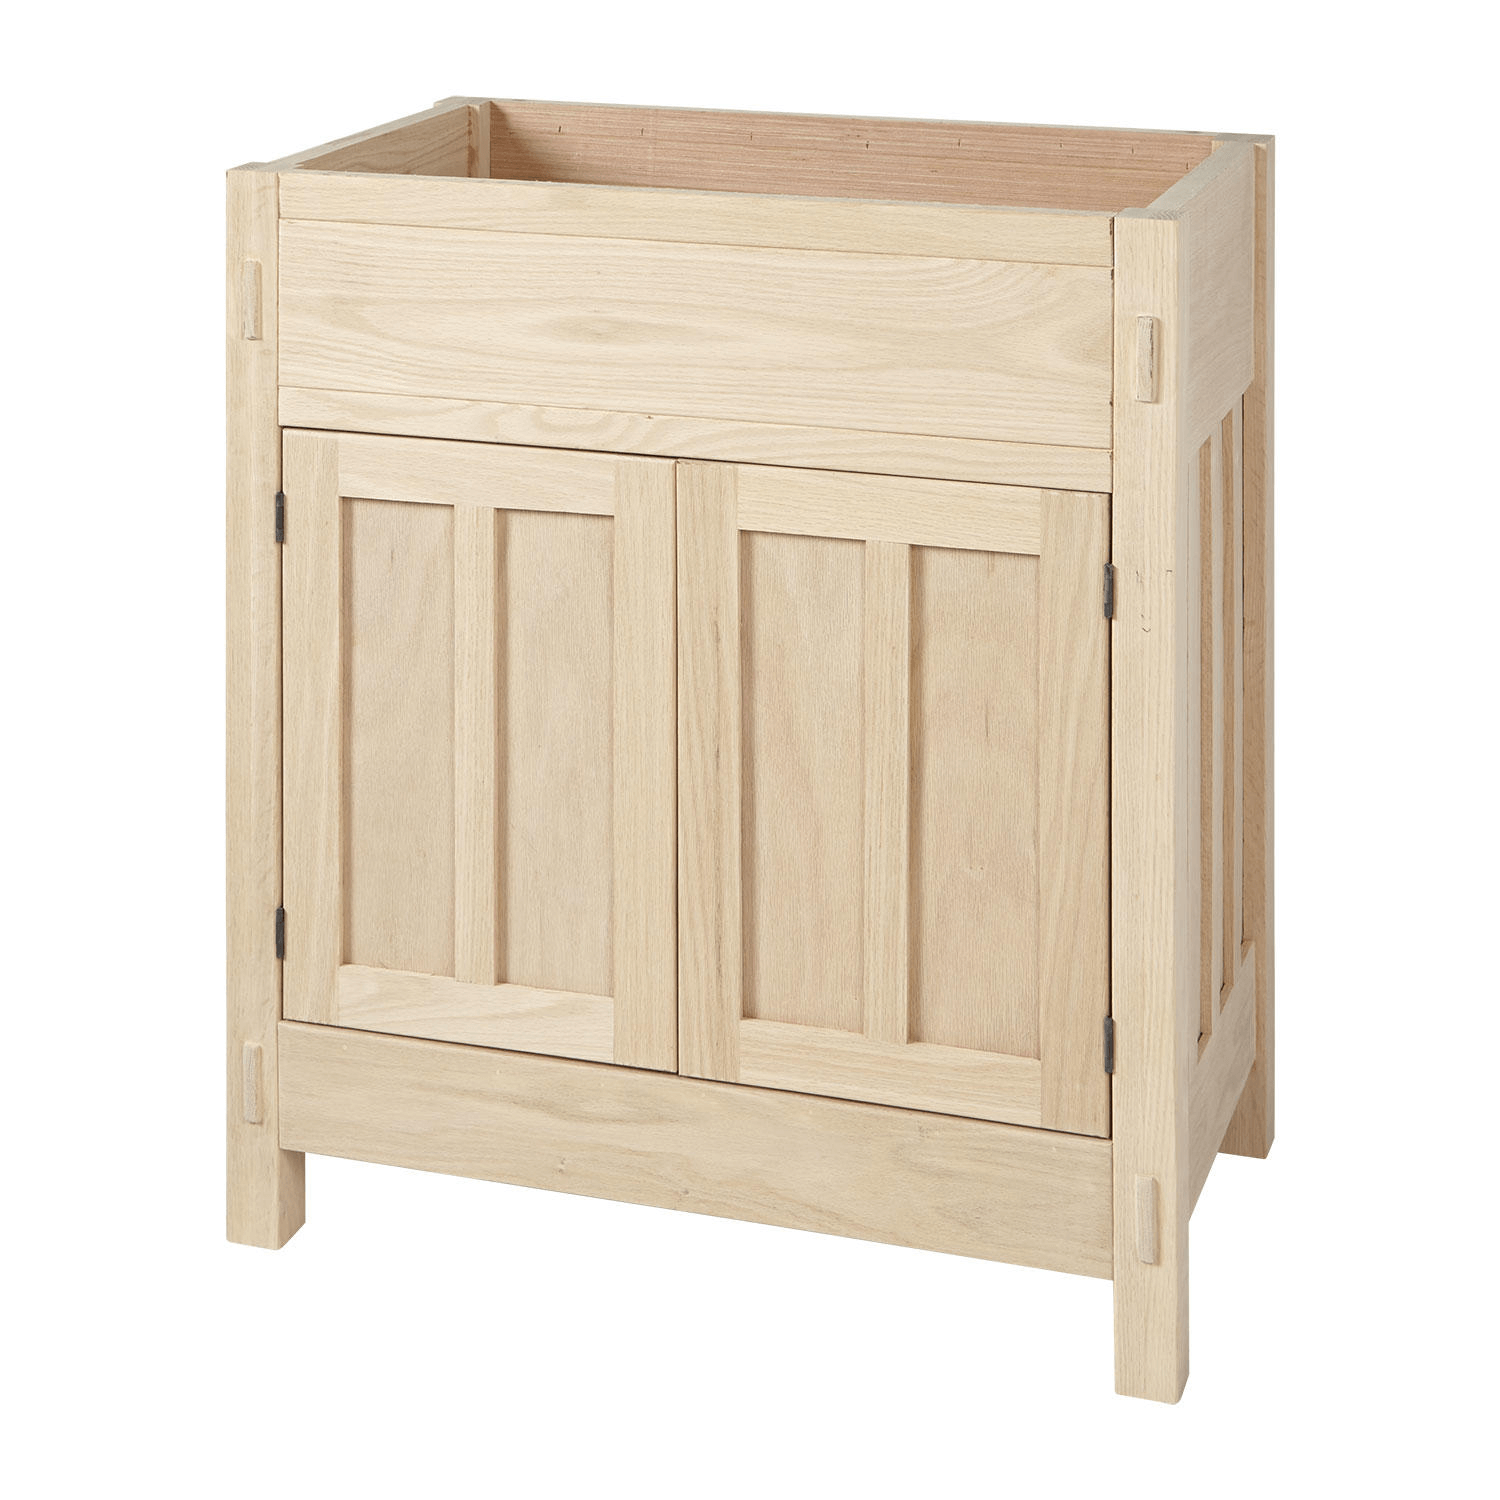 Mission Hardwood Unfinished Bathroom Vanity Base Unfinished Bathroom Vanities Wood Bathroom Vanity Bathroom Vanity Base